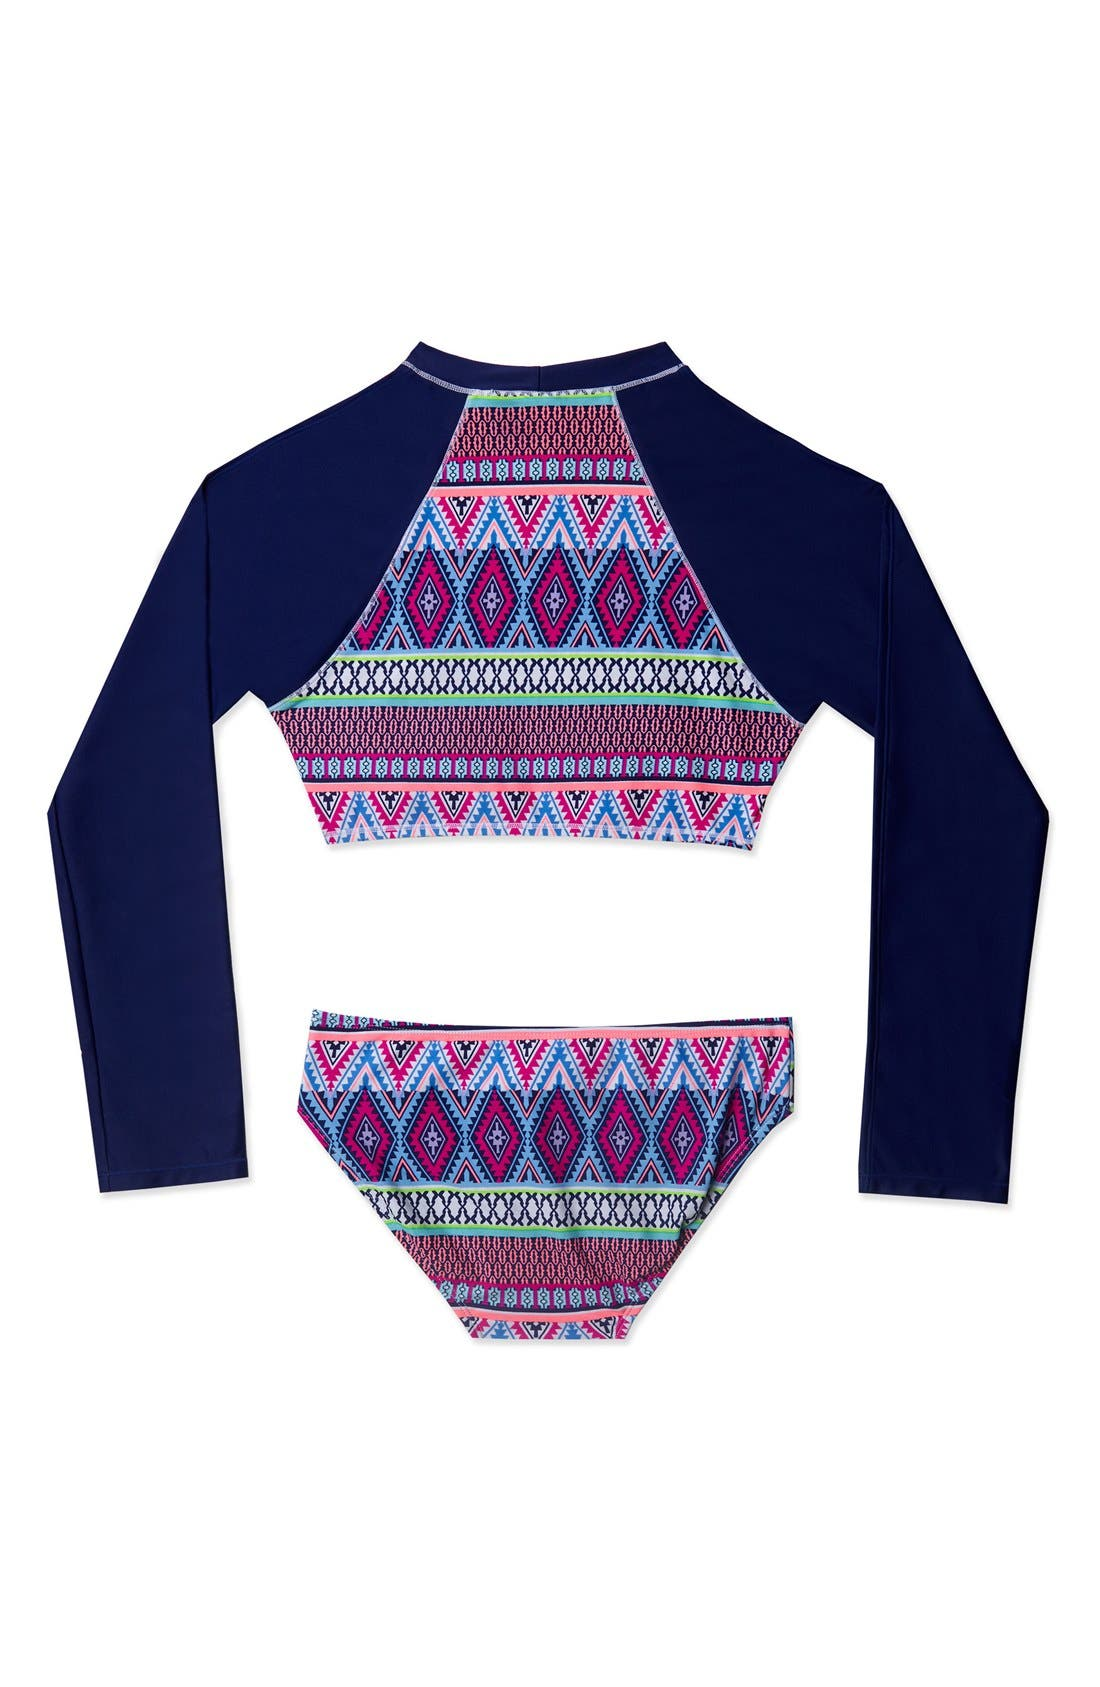 'Stripe Fusion' Two-Piece Rashguard Swimsuit,                             Alternate thumbnail 3, color,                             Navy Pink